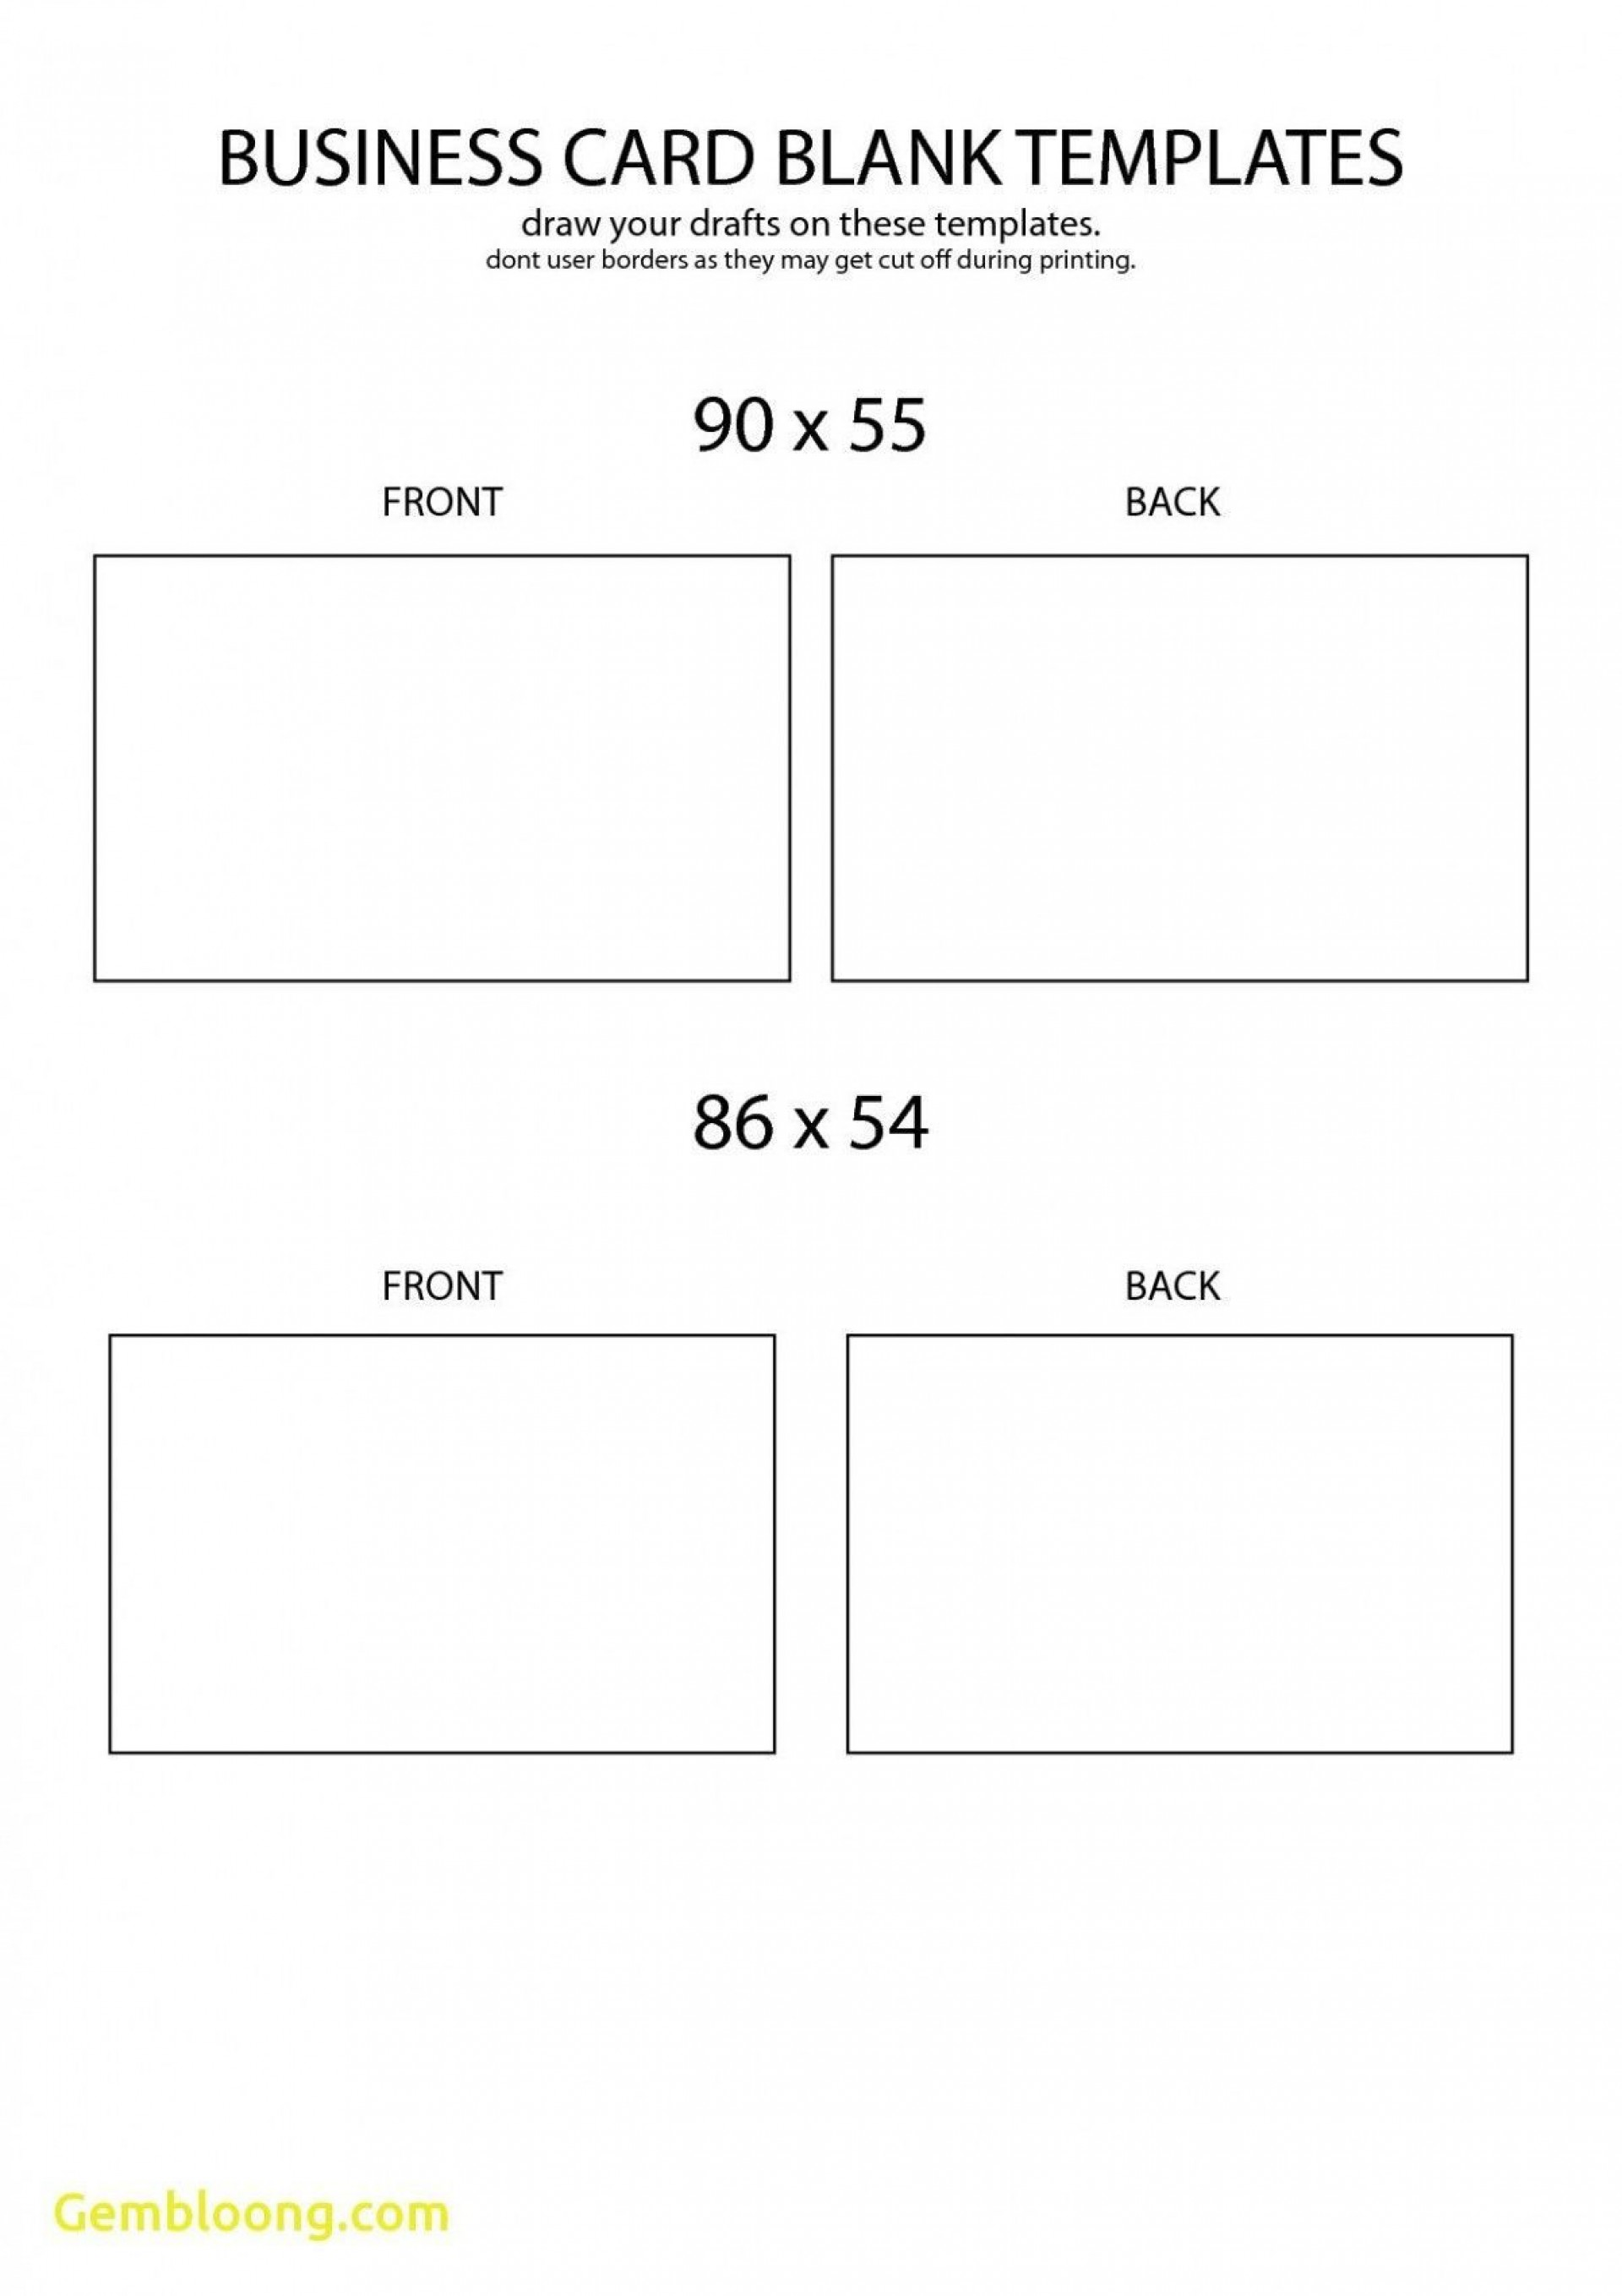 004 Wondrou Free Simple Busines Card Template Word High Resolution 1920